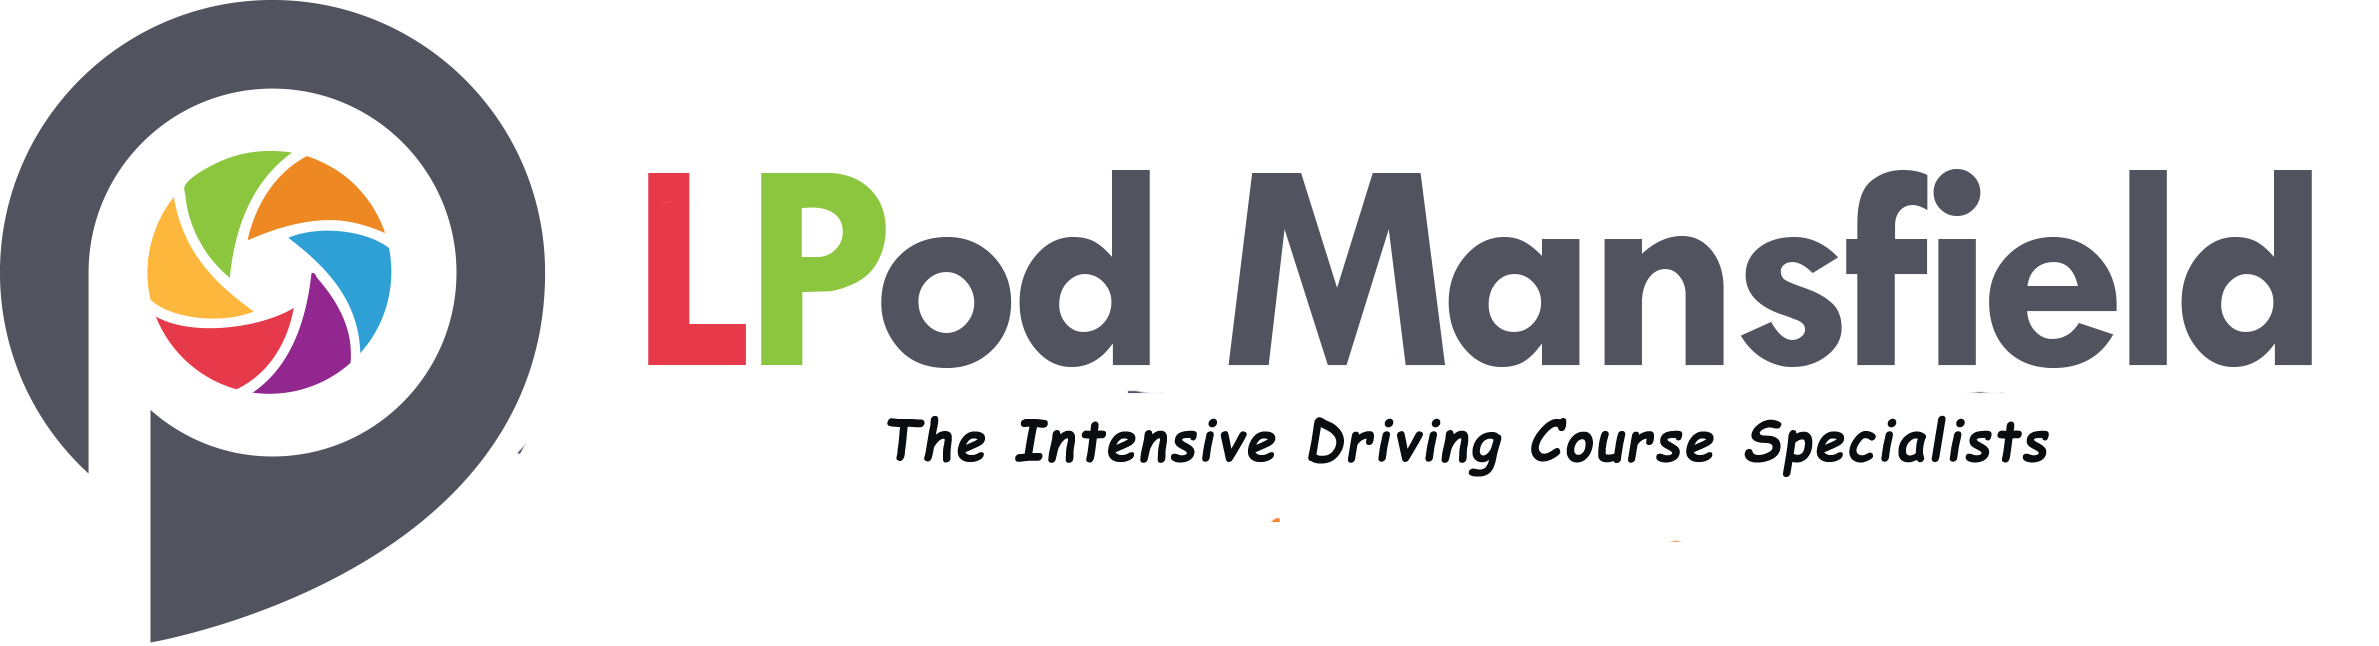 intensive driving courses mansfield, intensive driving school mansfield